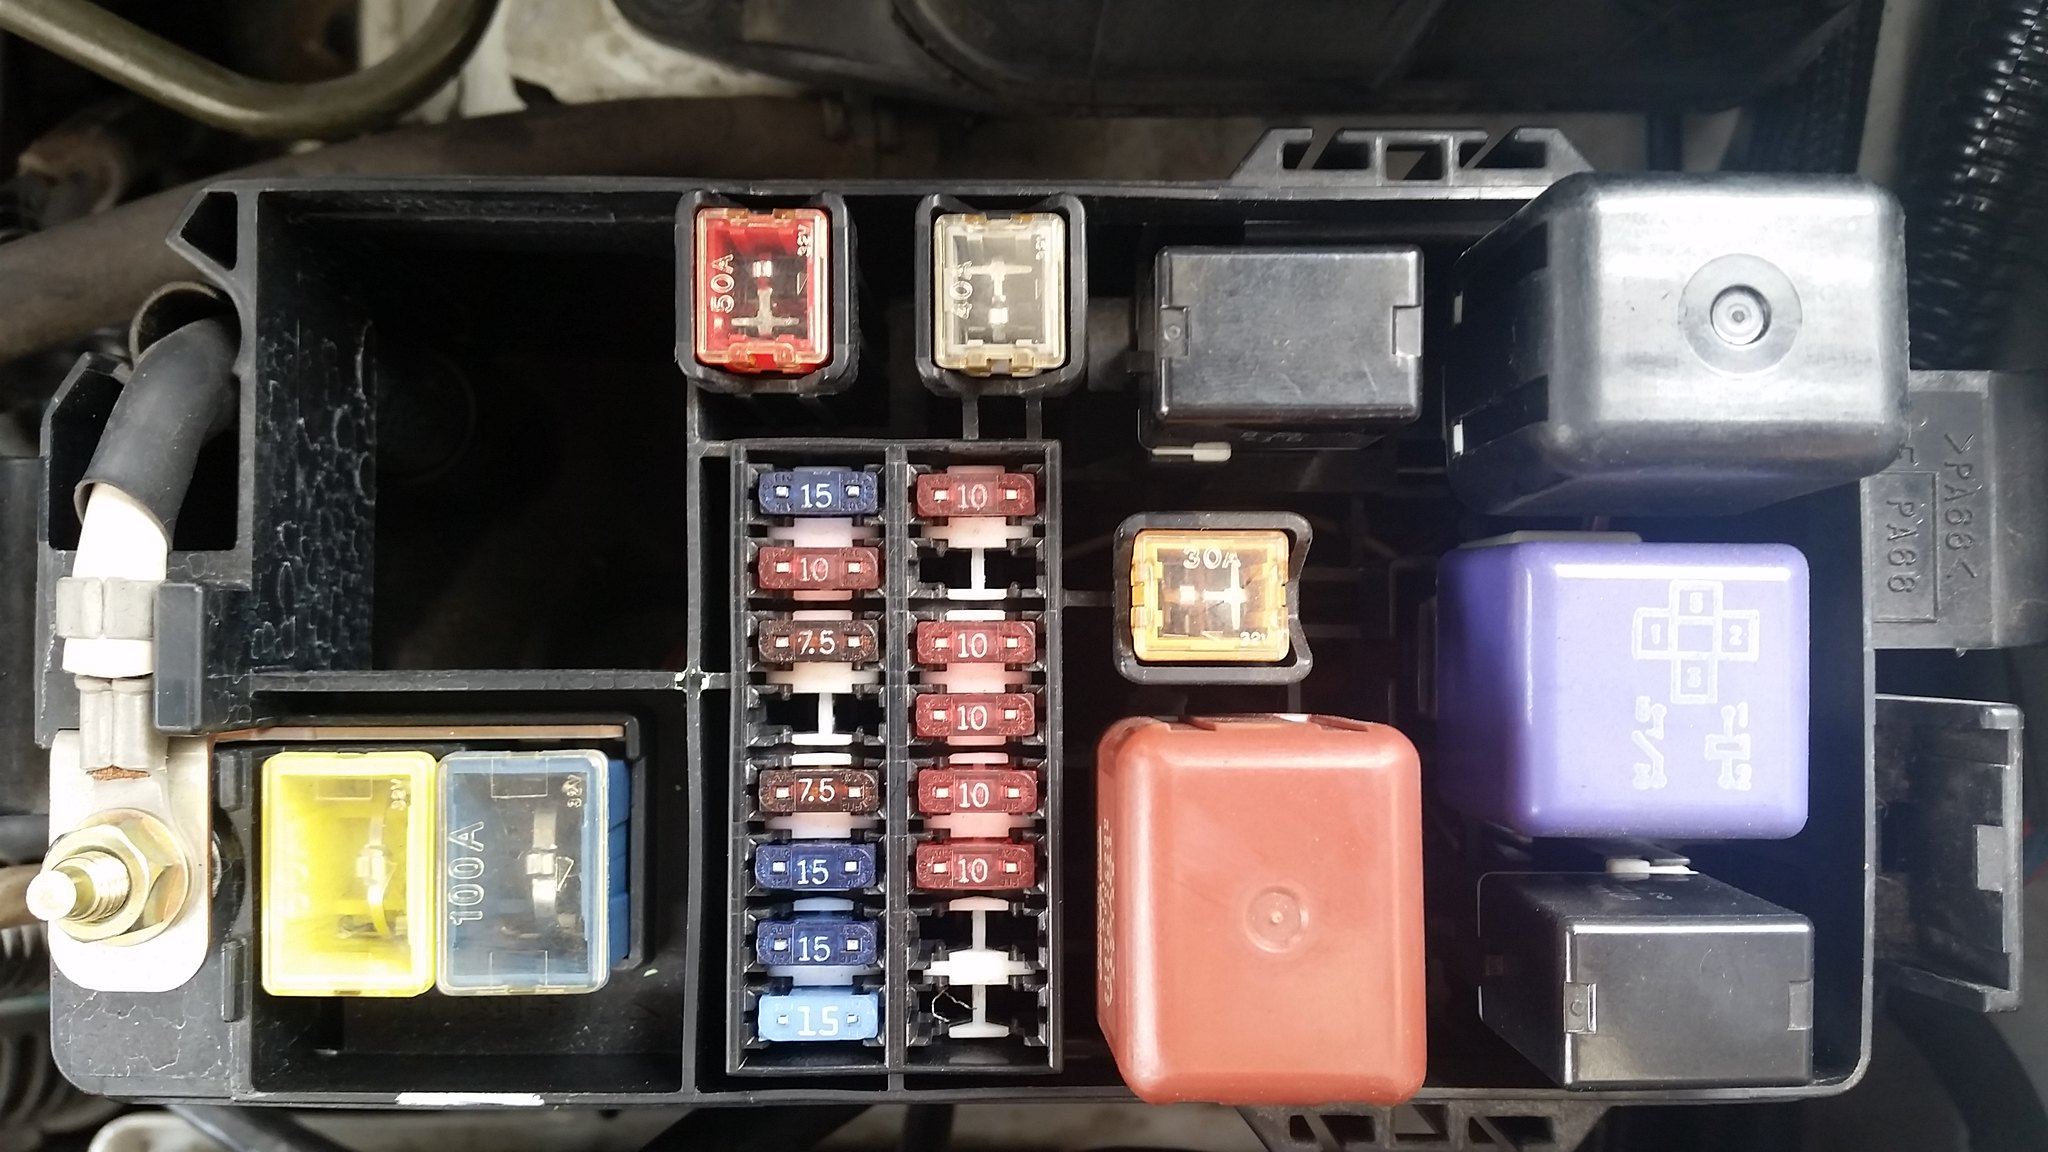 Using empty slots in OEM fuse box? - Toyota 4Runner Forum ... on dc controller box, dc relay box, contactor box, dc switches box, dc switch box, dc power box, dc circuit breaker box, dc wiring box, dc panel box,